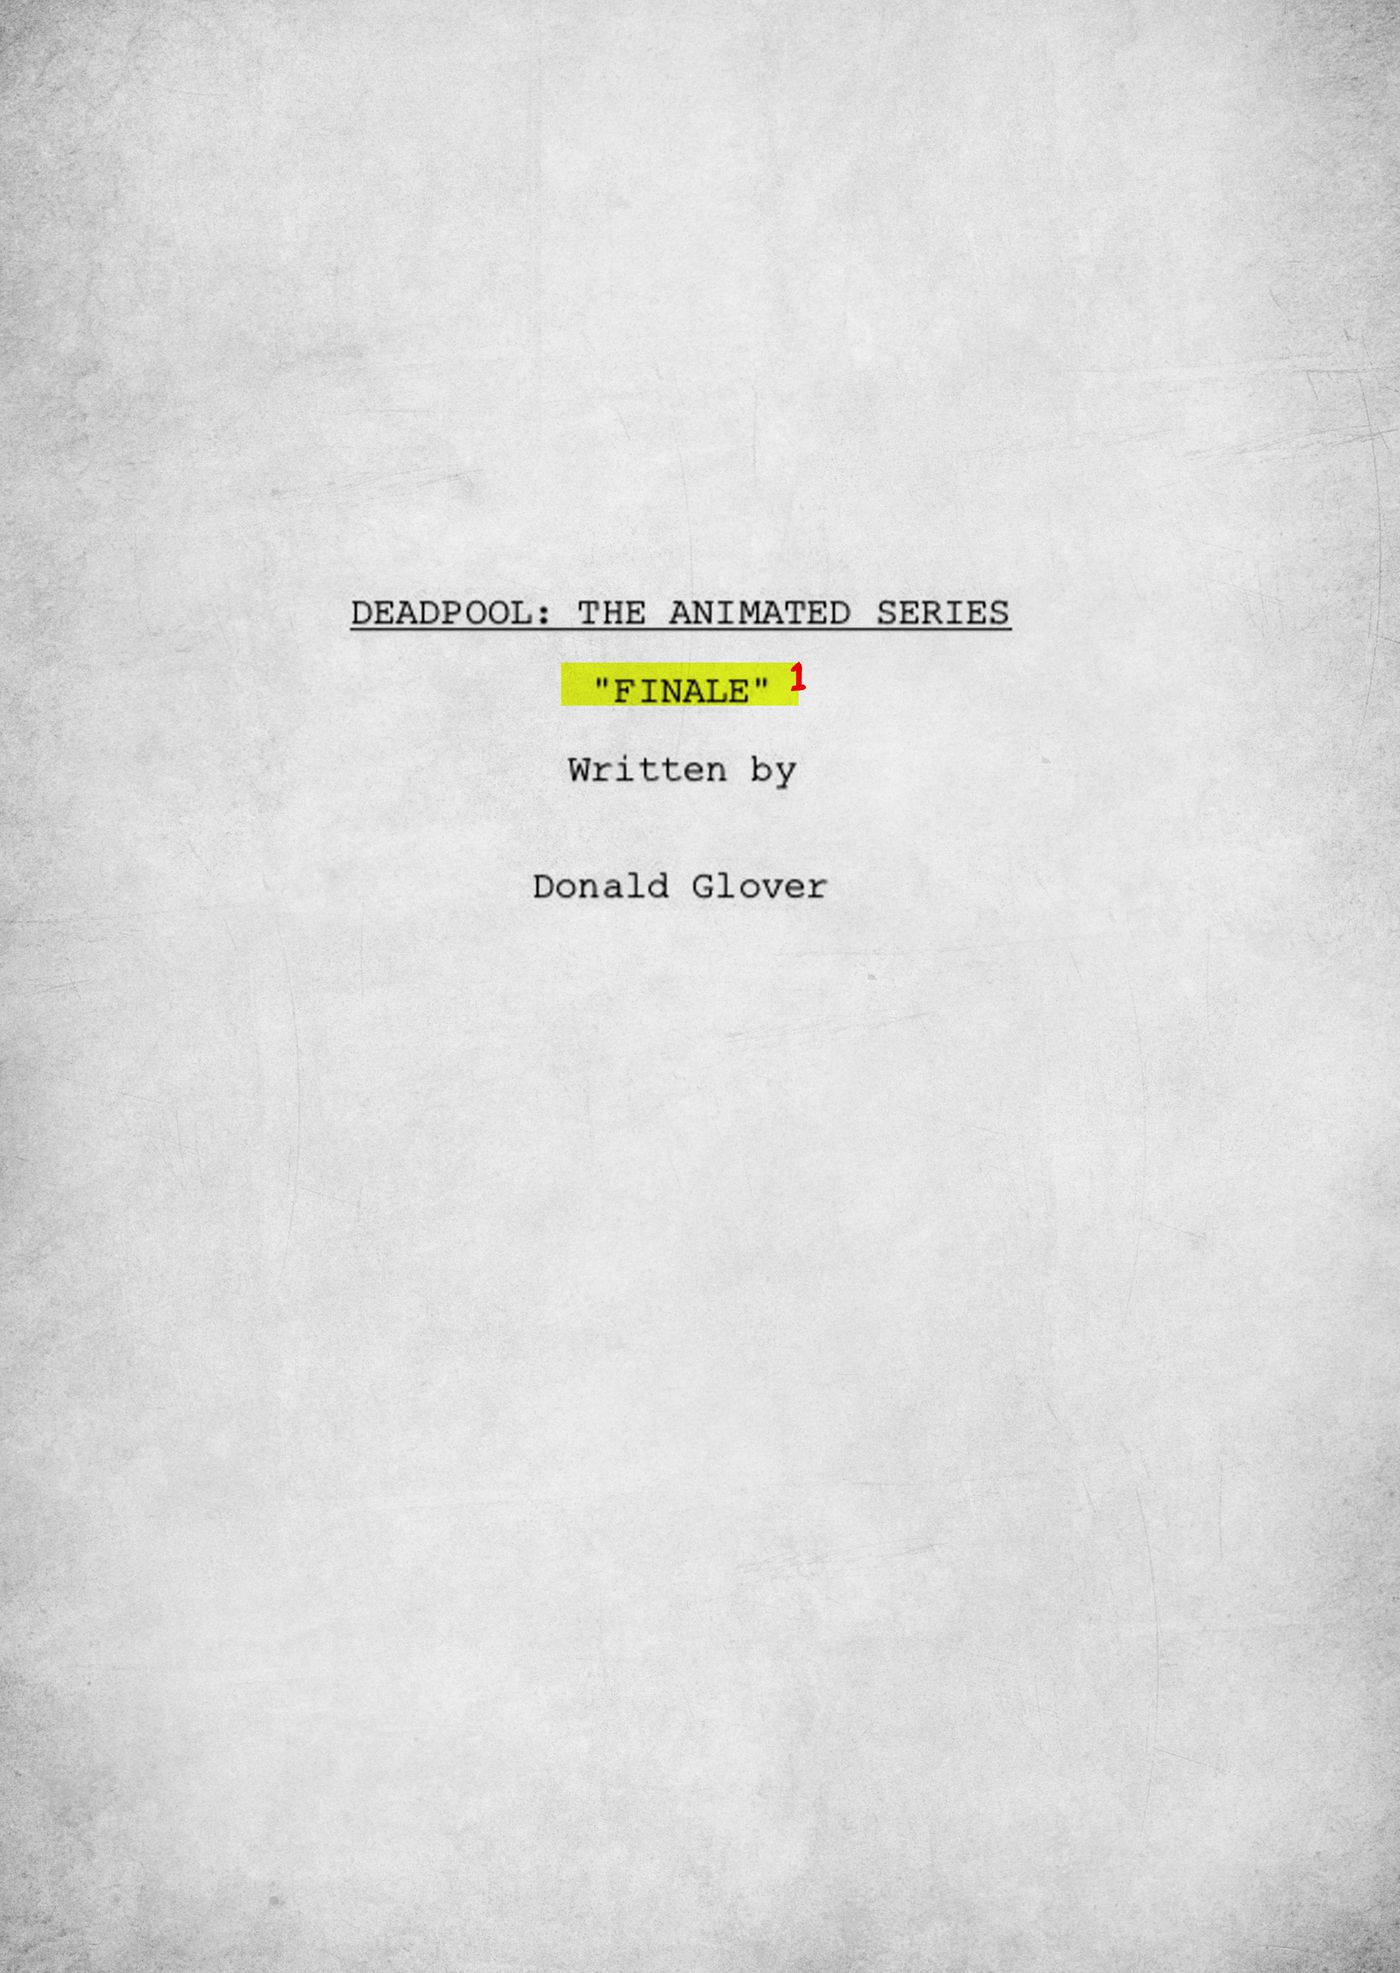 deadpool script by donald glover